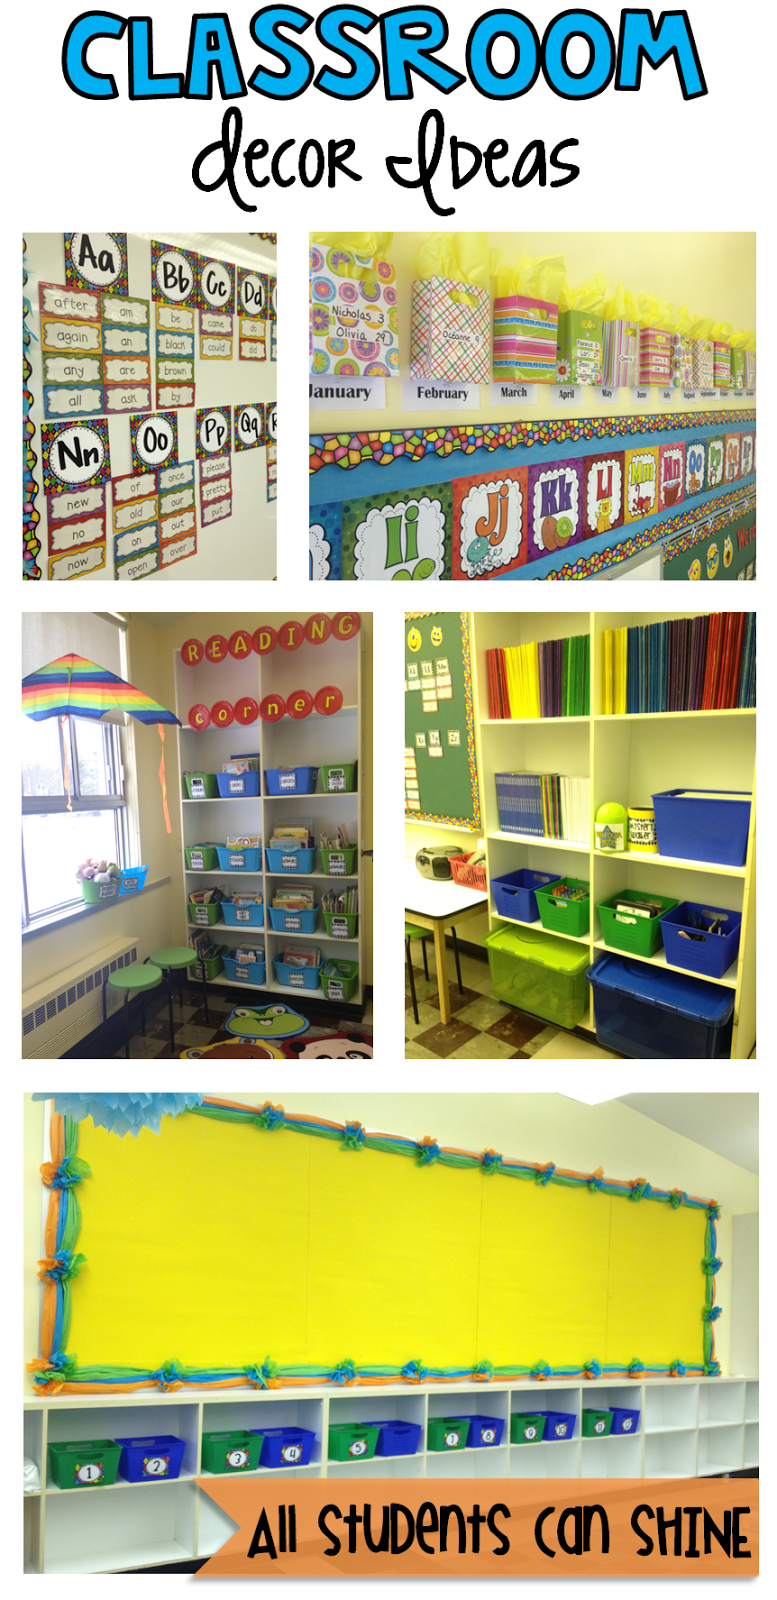 Classroom Review Ideas ~ Summer classroom ideas home design and decor reviews